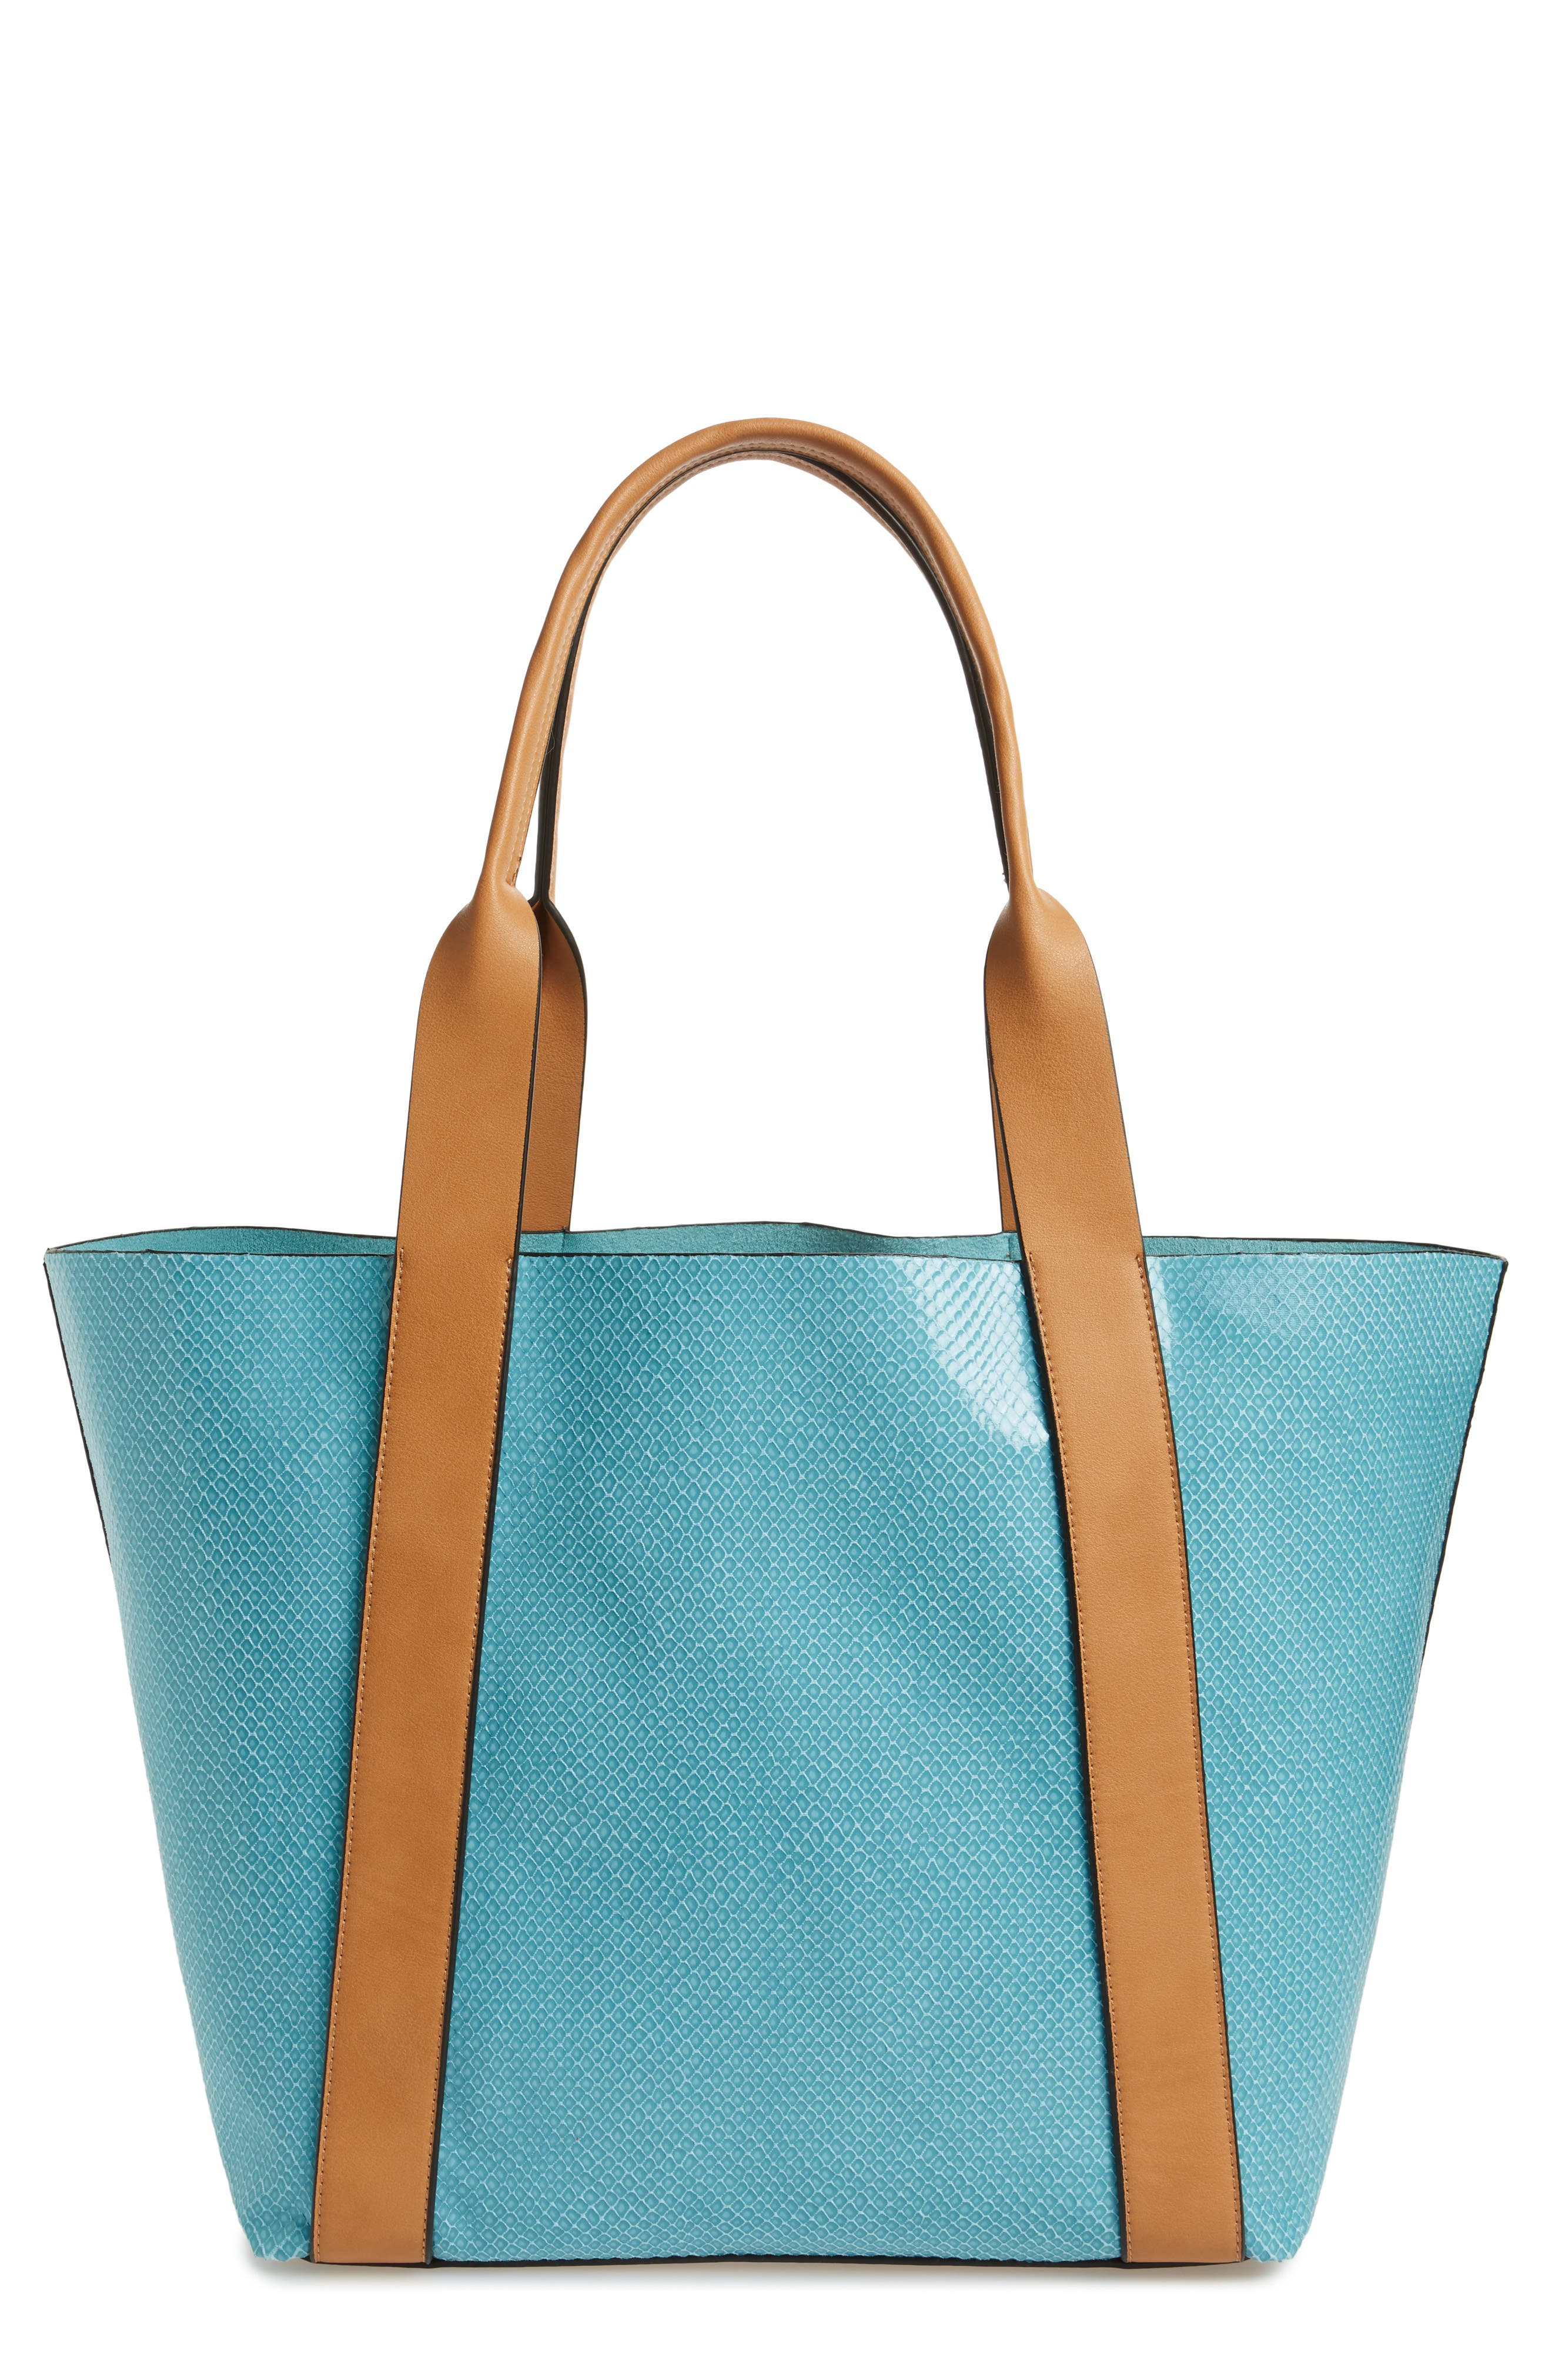 Main Image - Sondra Roberts Faux Leather Tote & Wristlet